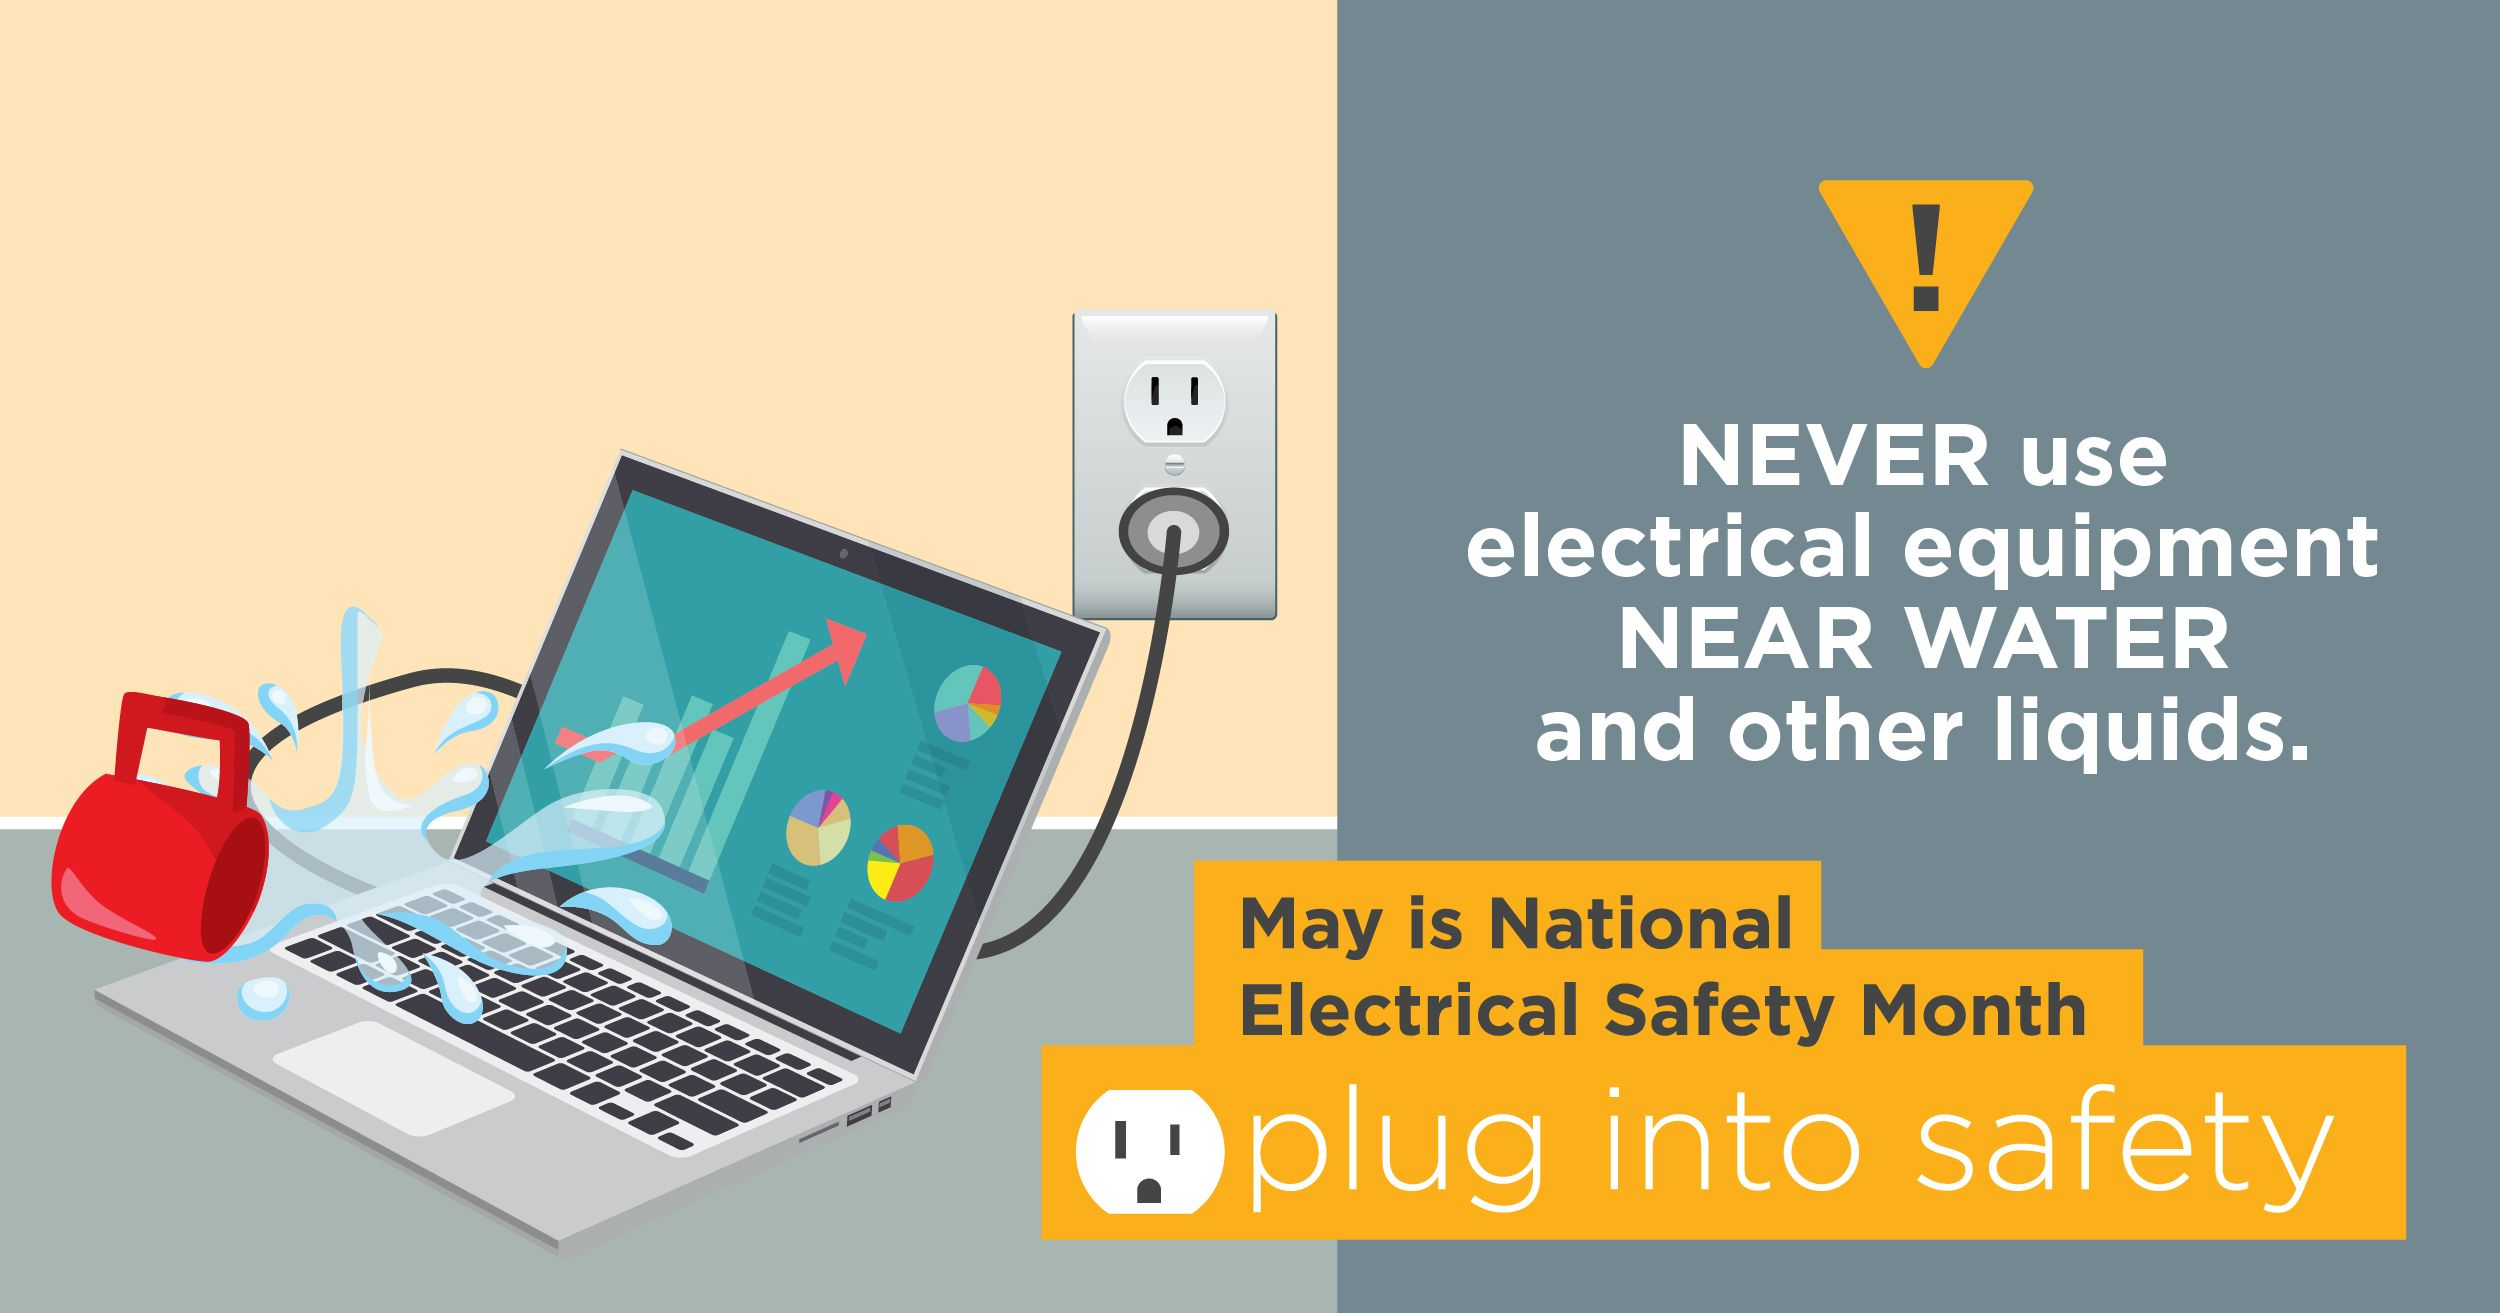 Electrical safety month day 4 be safe having liquids